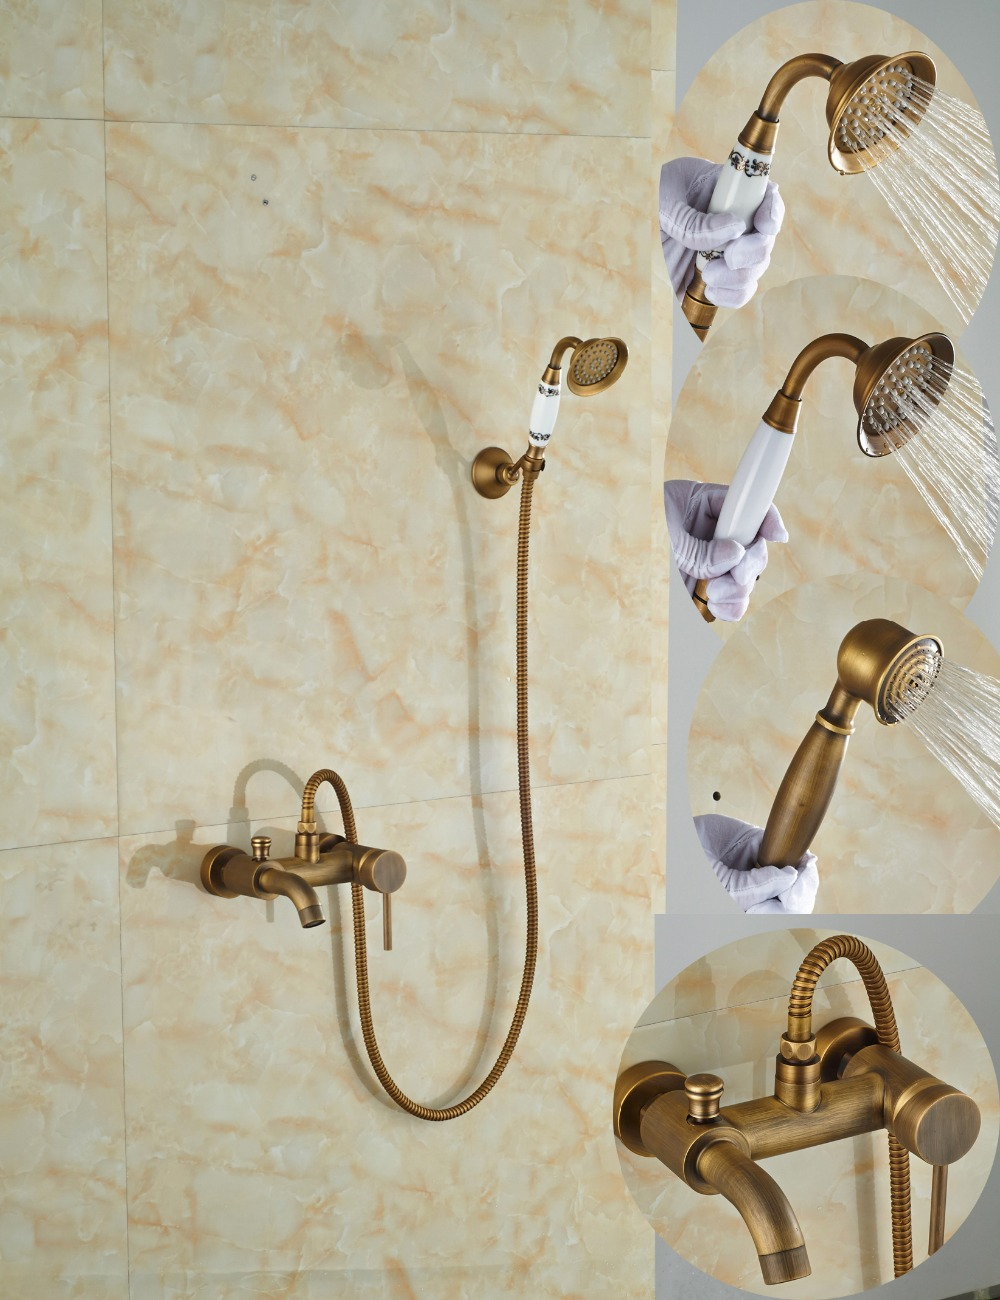 2016 Modern Antique Brass Bathroom Tub Faucet Single Handle Dual Holes Tub Spout Mixer Tap W/ Hand Shower chrome finished bathroom sink tub faucet single handle waterfall spout mixer tap solid brass